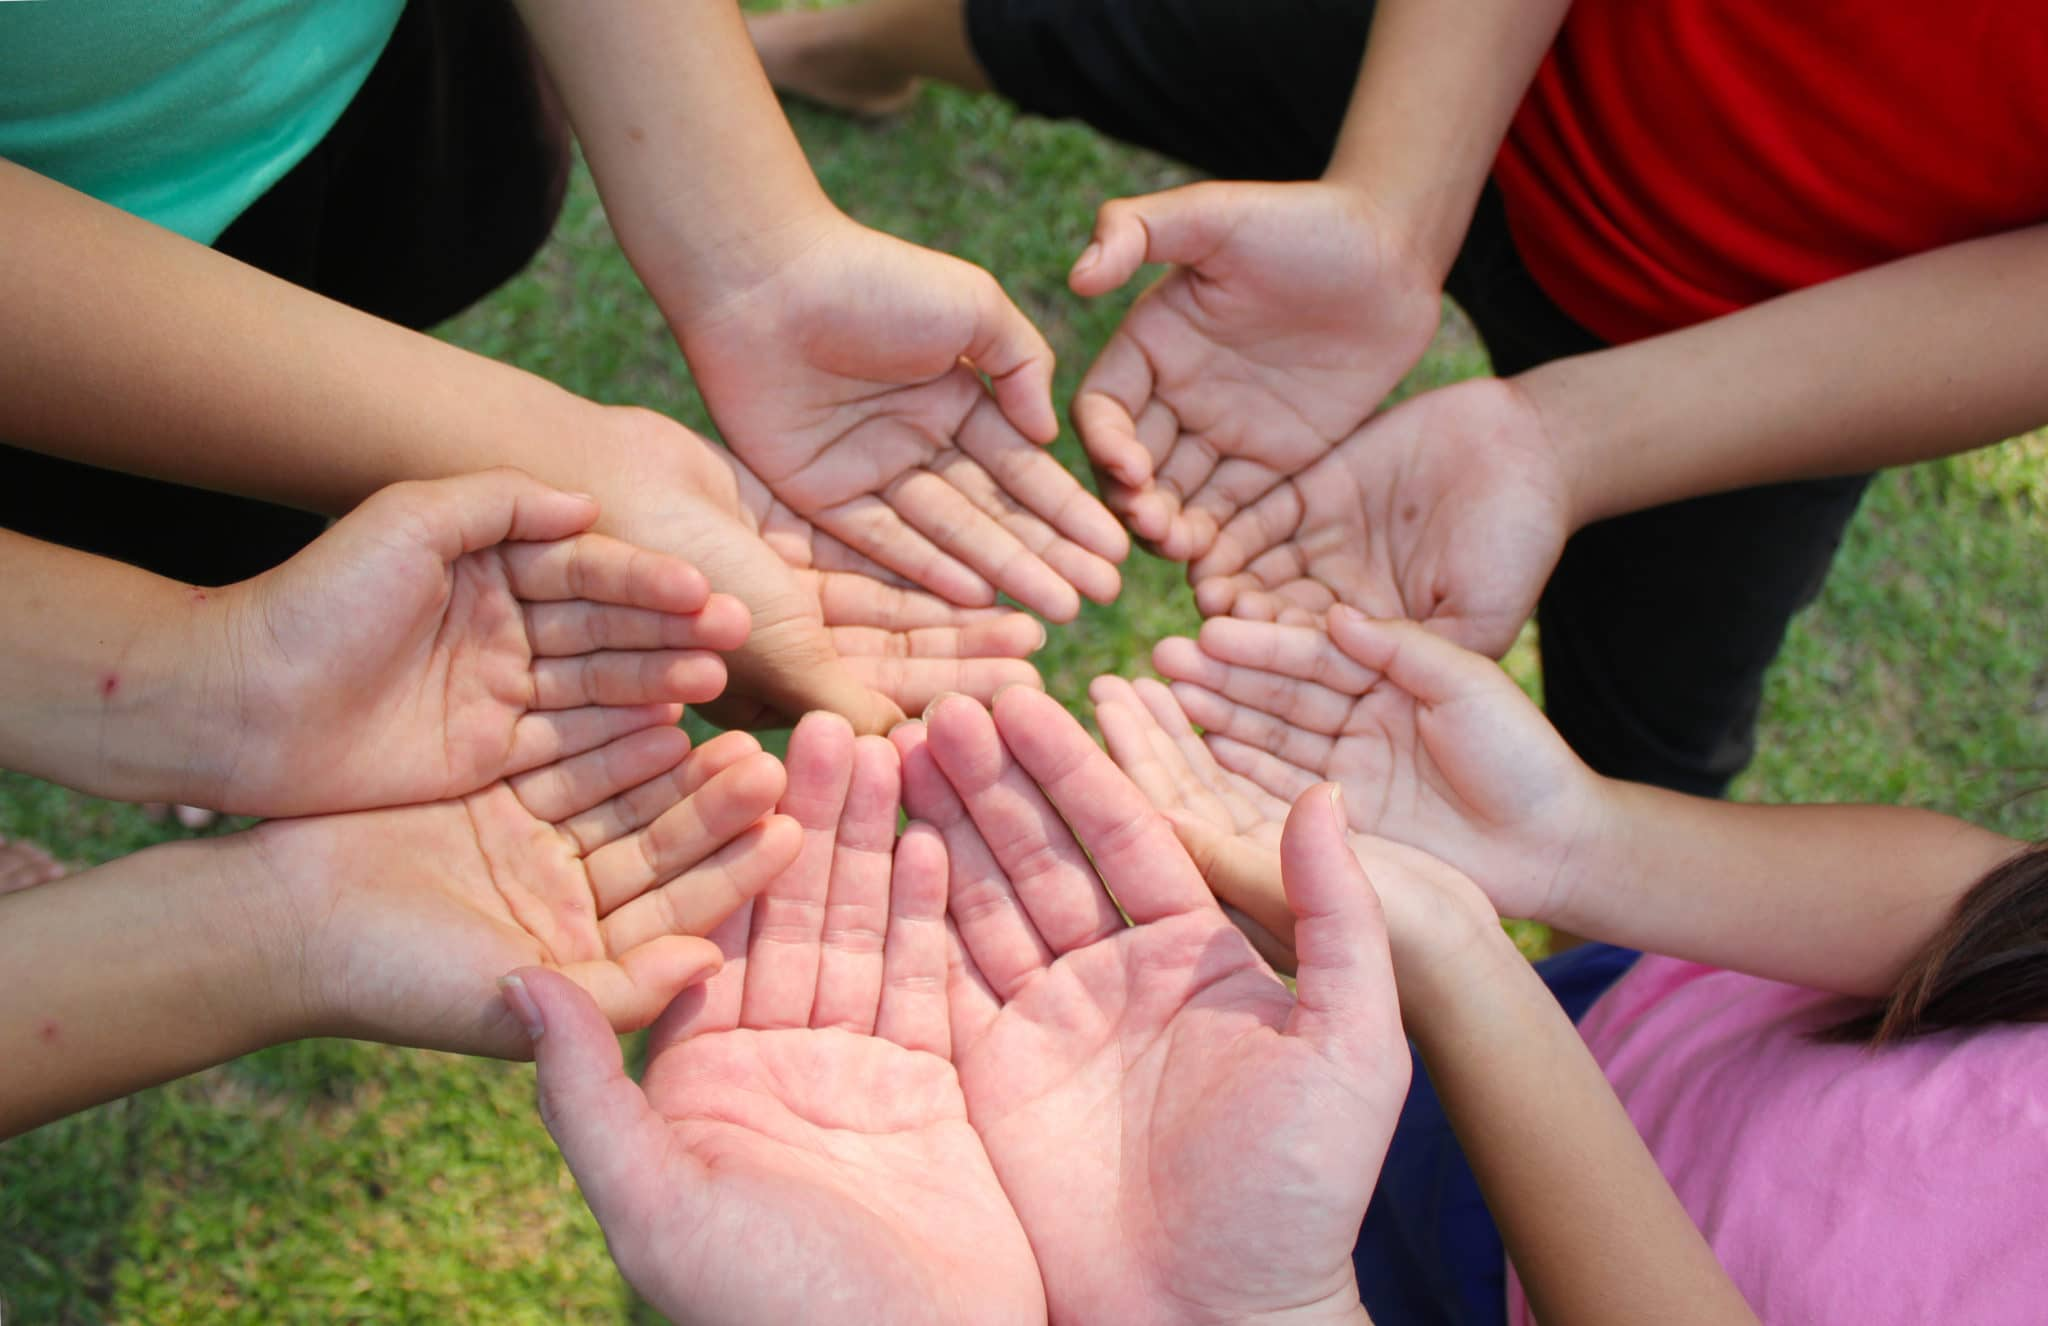 Group-holding-giving-hands